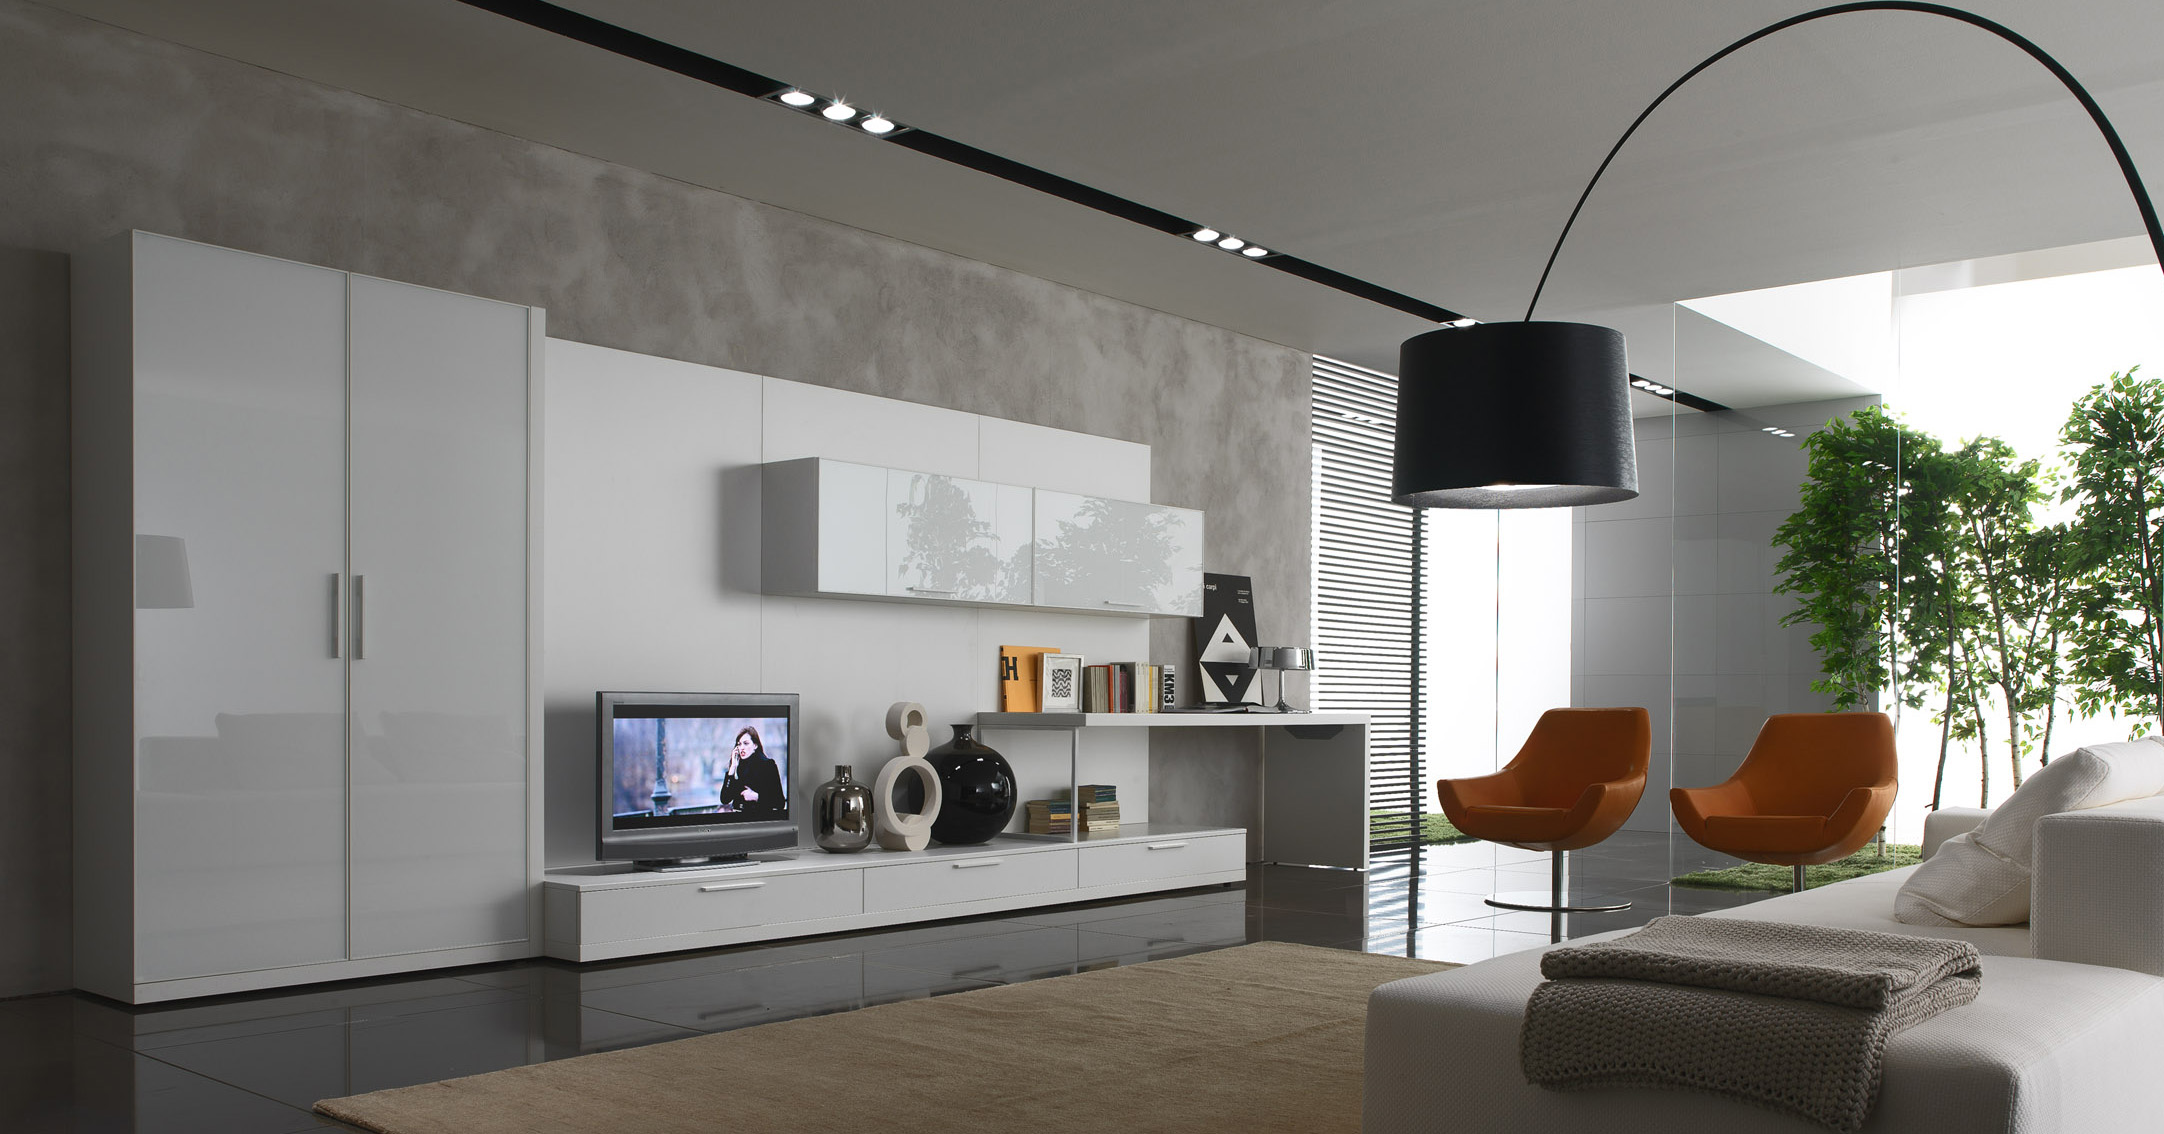 Outstanding Modern Living Room 2164 x 1134 · 481 kB · jpeg